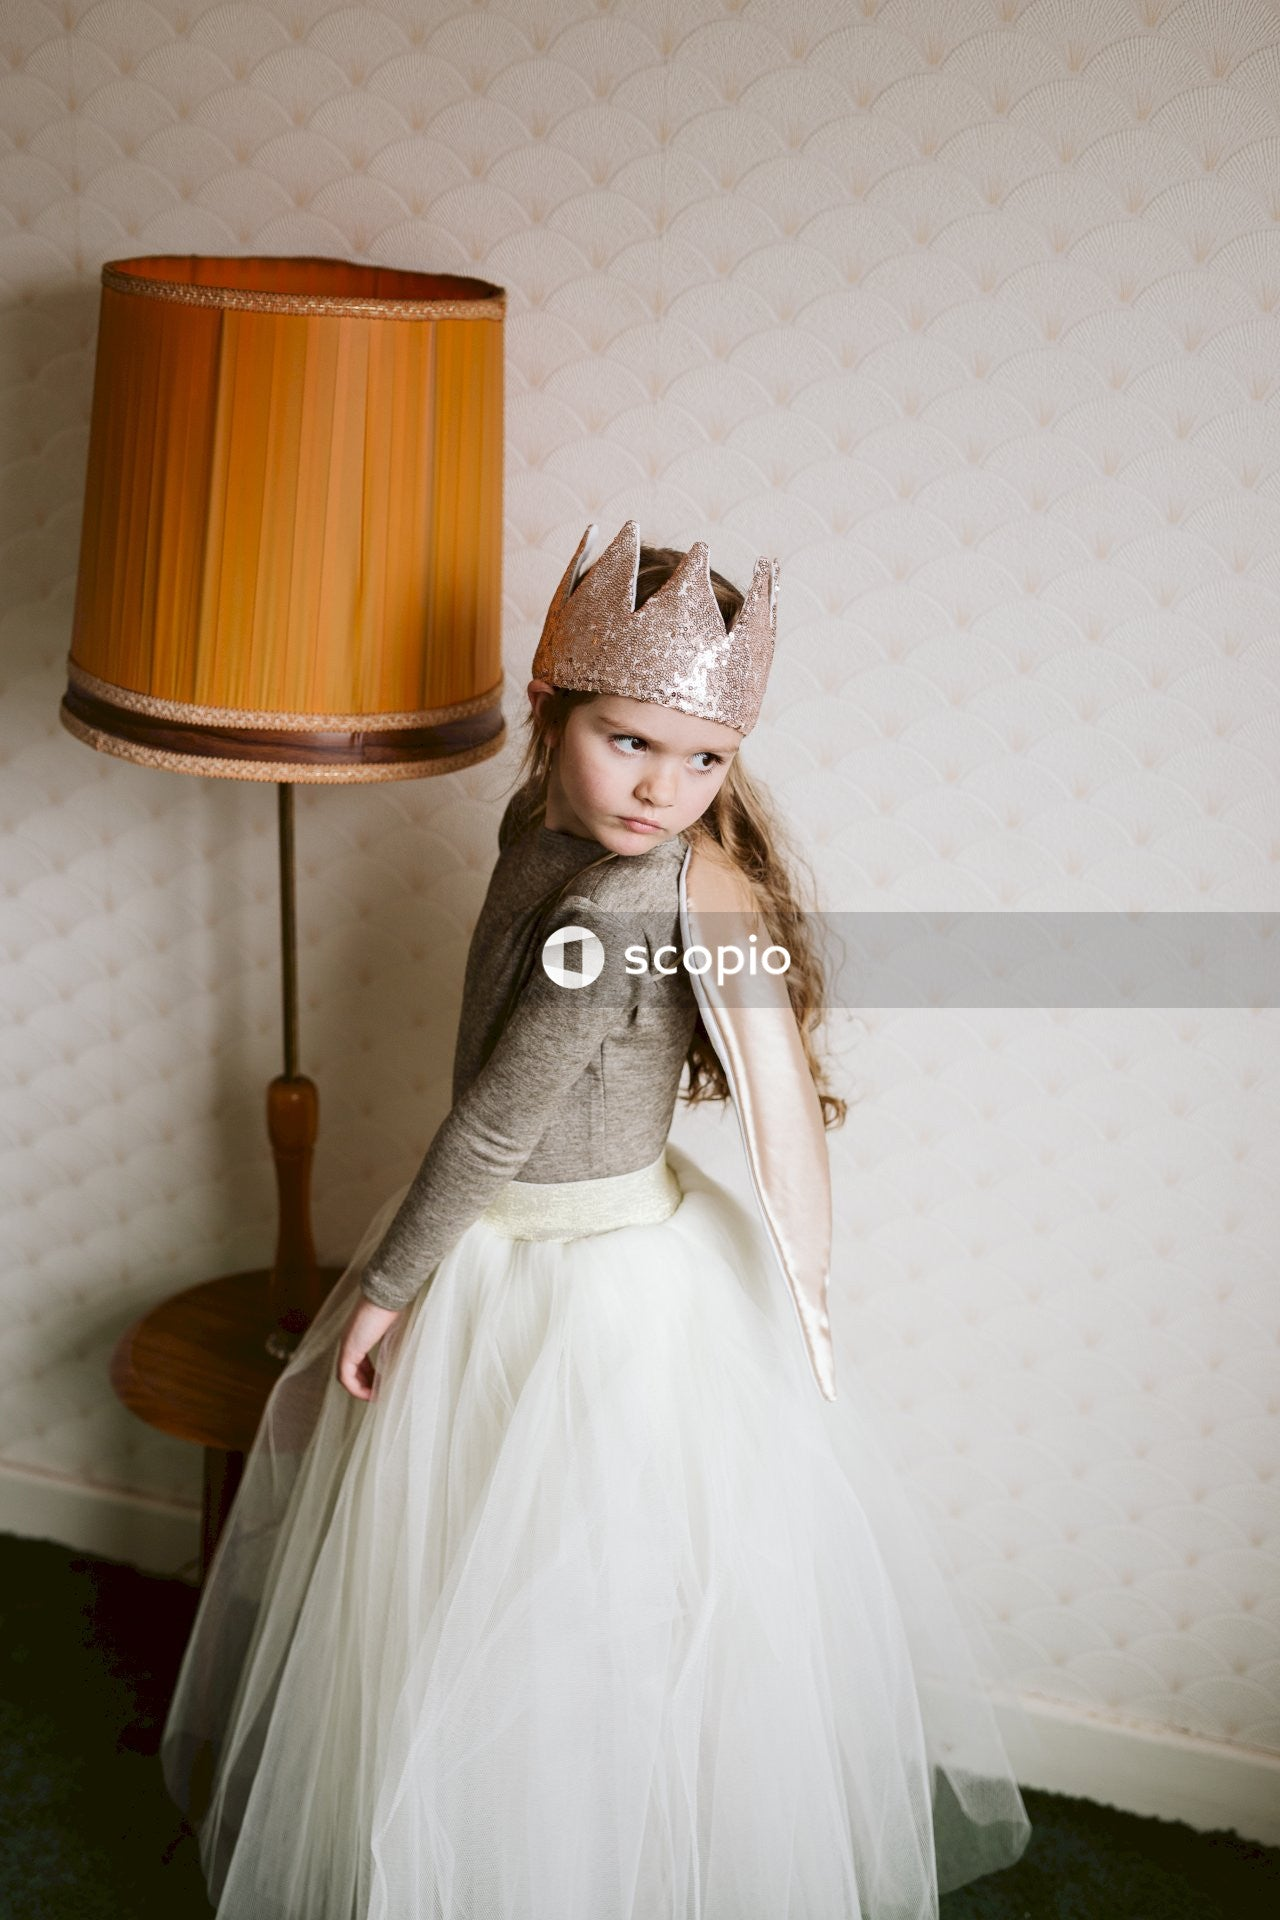 Girl in white dress wearing gold crown